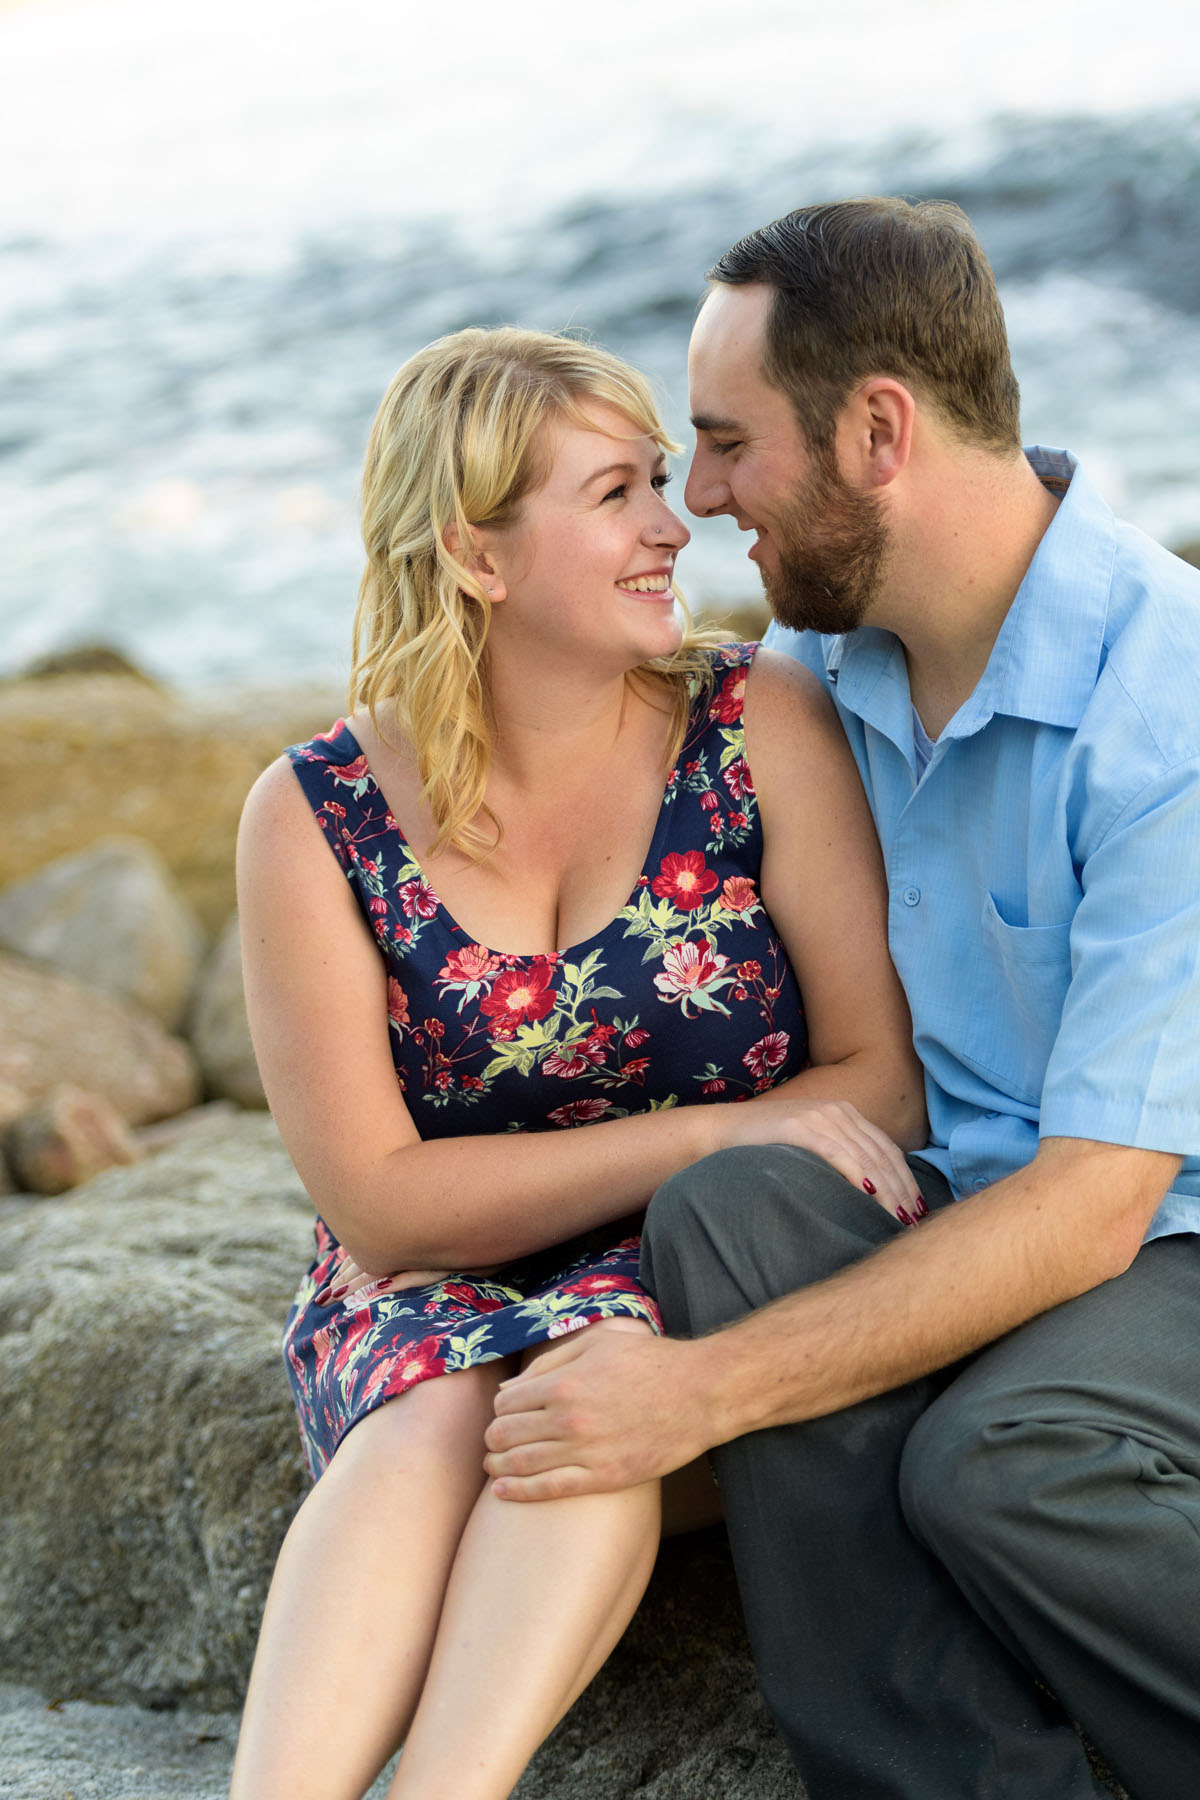 couple sitting on beach rock cuddling - Stewart's Cove - Carmel Engagement Photography - photos by Bay Area wedding photographer Chris Schmauch